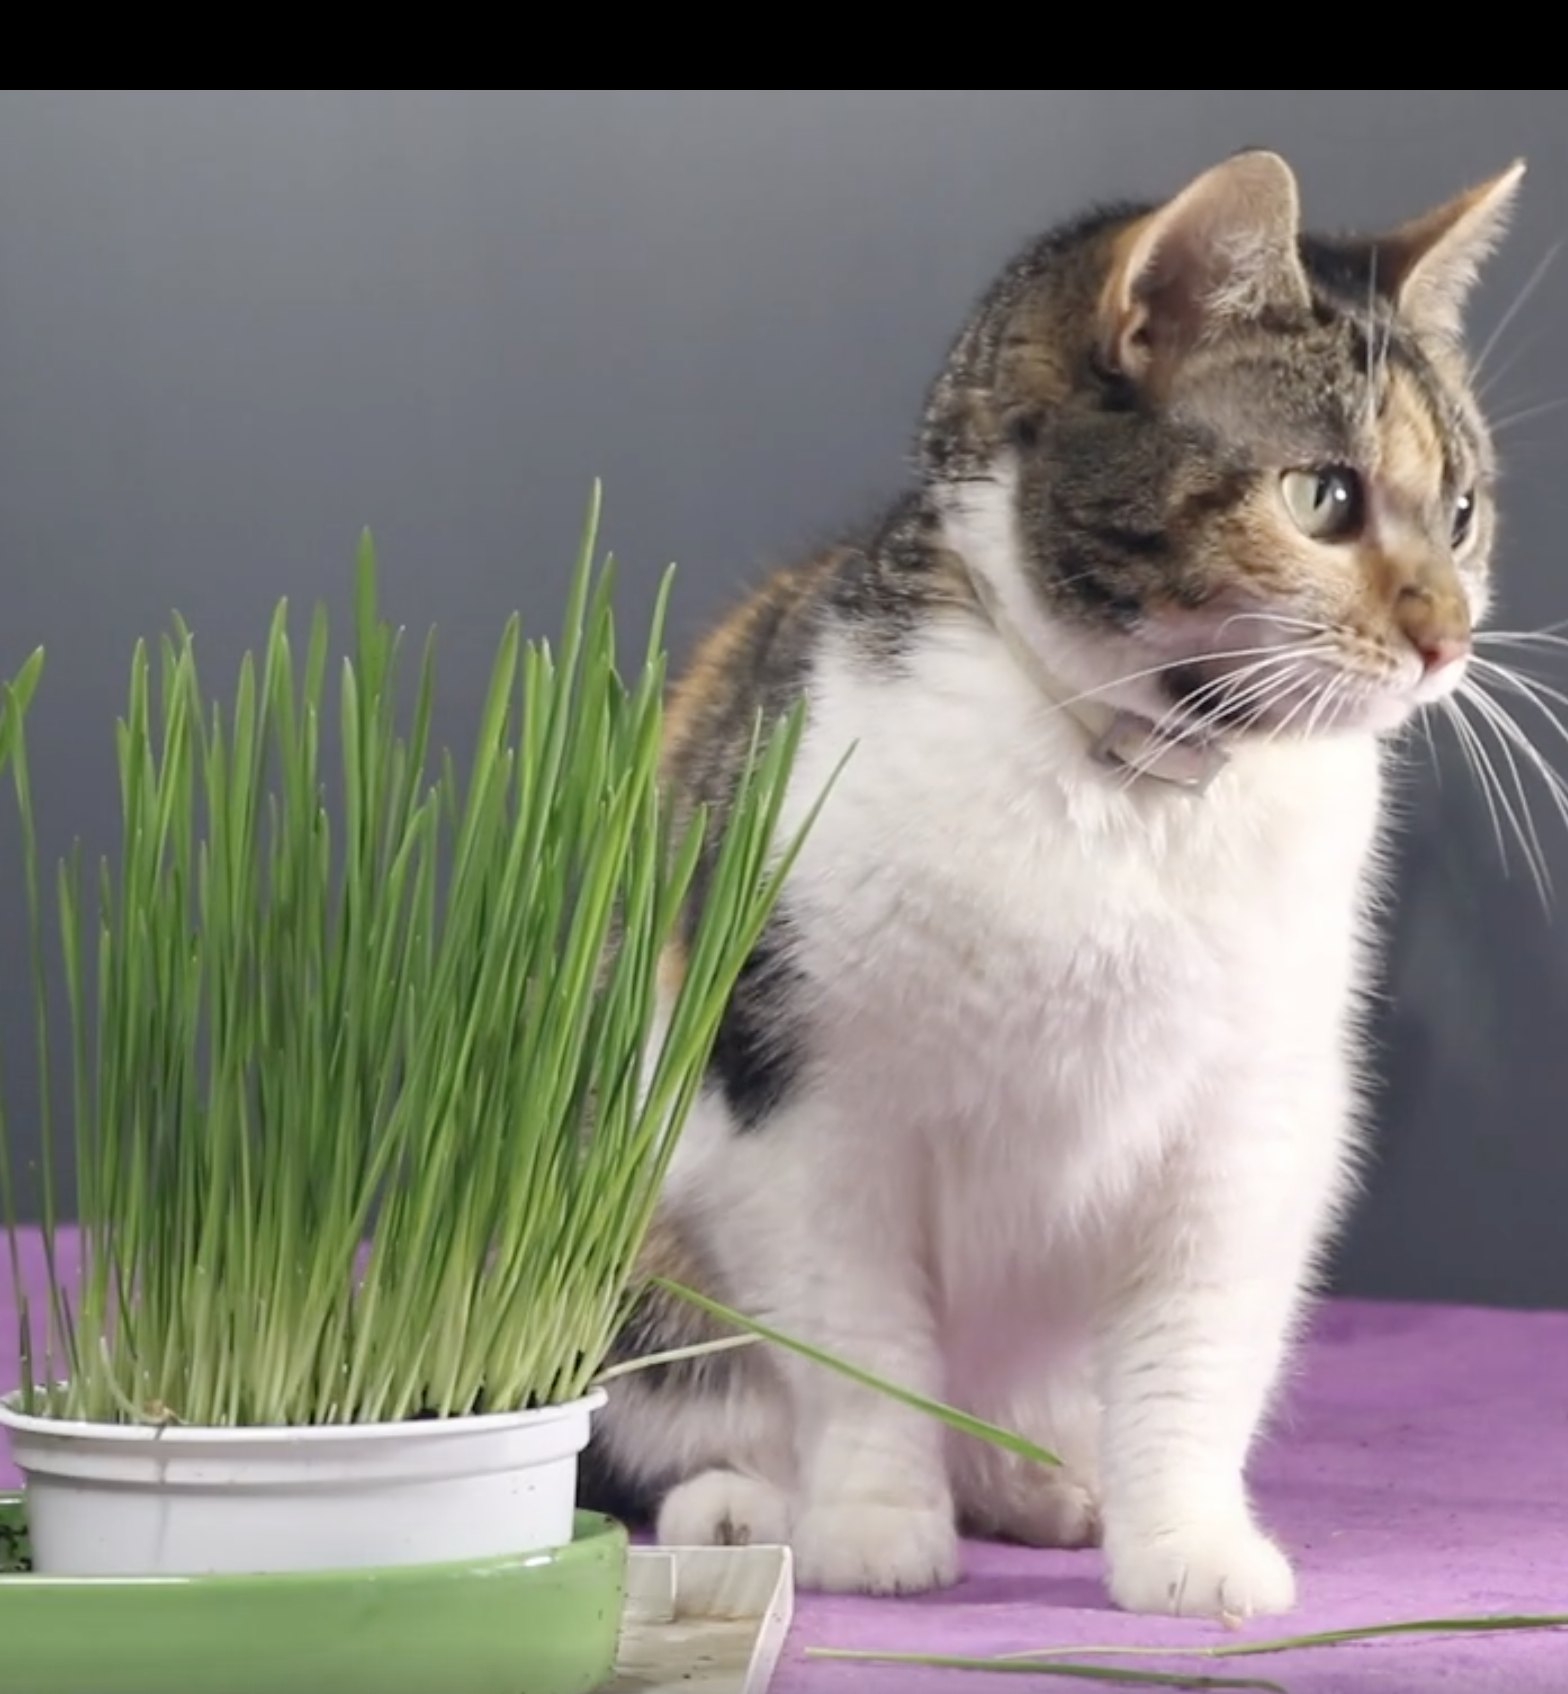 Cat Grass Smartykat Sweet Greens Cat Grass Kit In 2020 Cute Cats And Kittens Cute Little Animals Cute Funny Animals